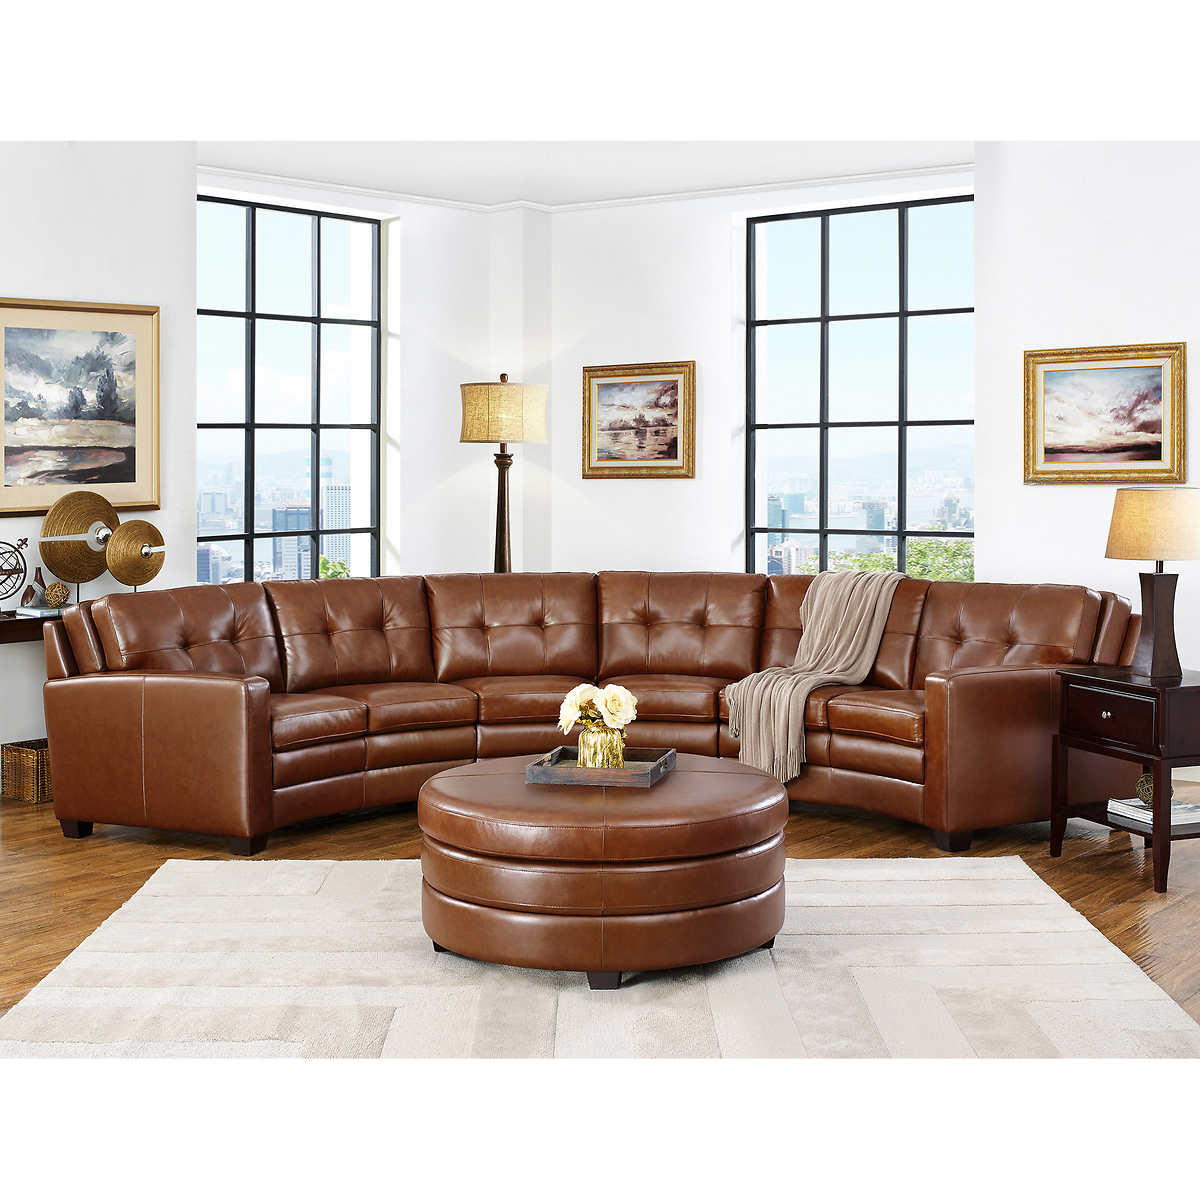 Suni 5 Piece Top Grain Leather Curved Living Room Sectional Set With Ottoman